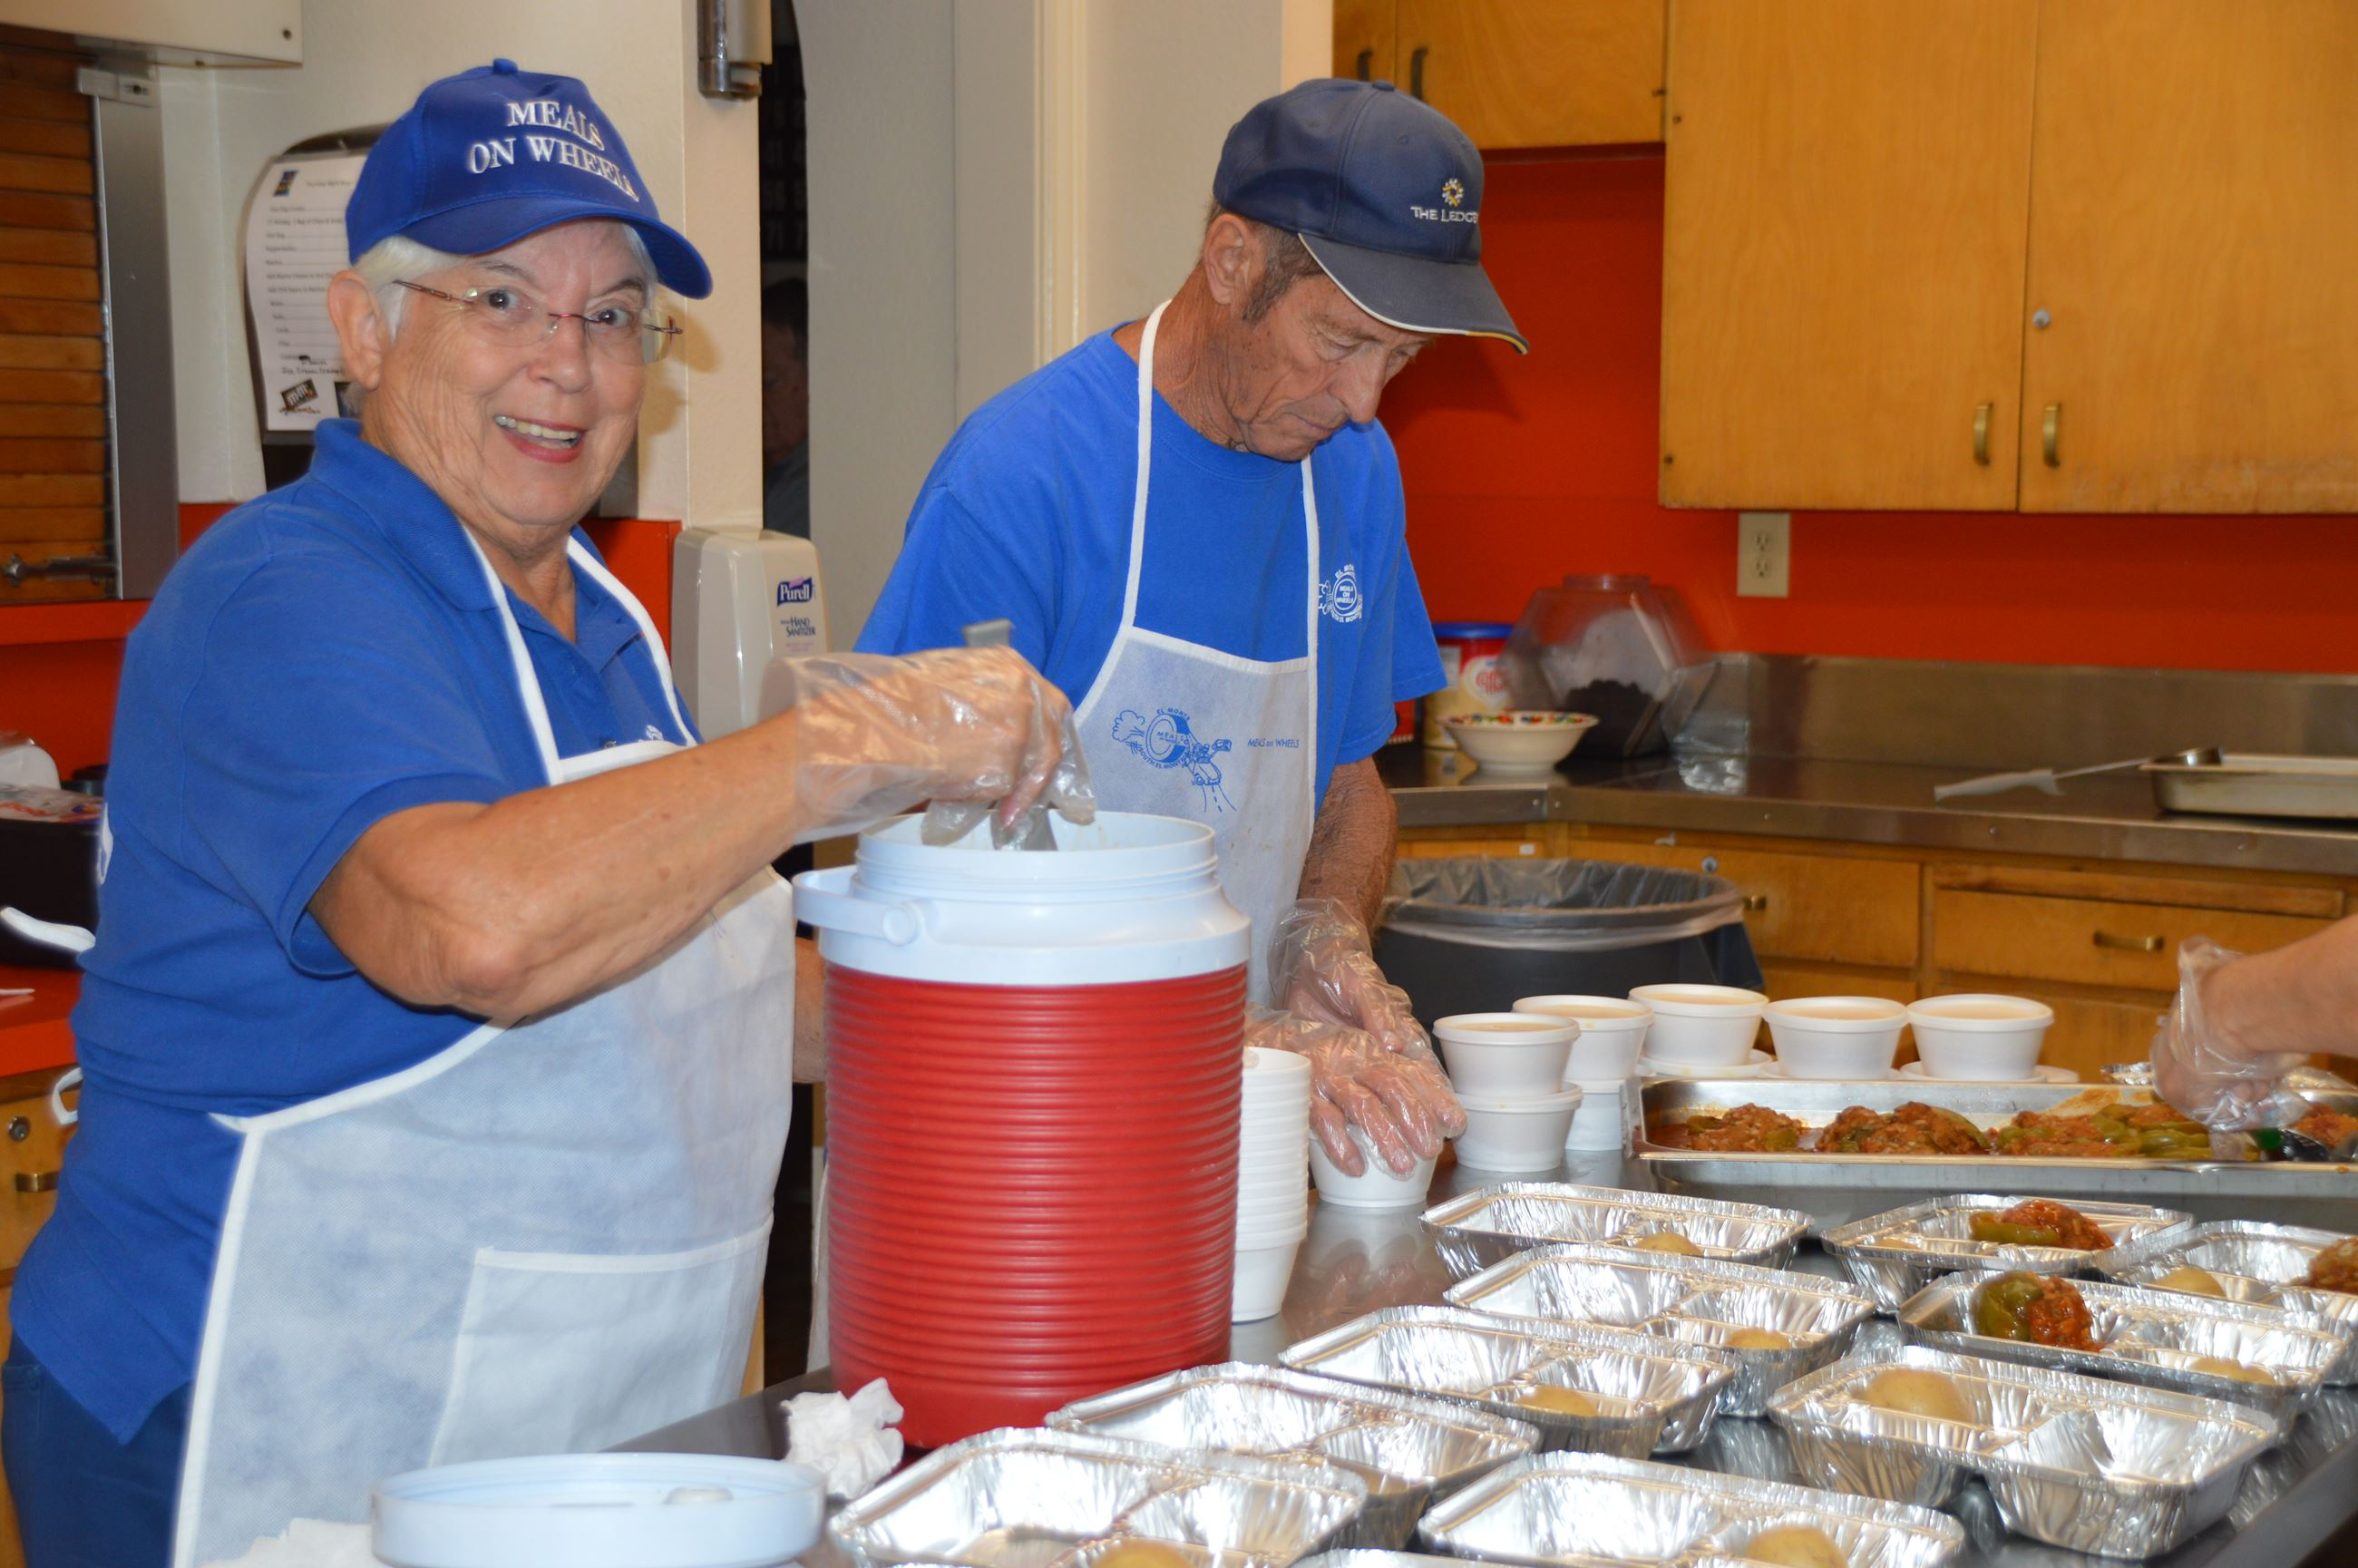 Meals on Wheels volunteers packing meals for the homebound